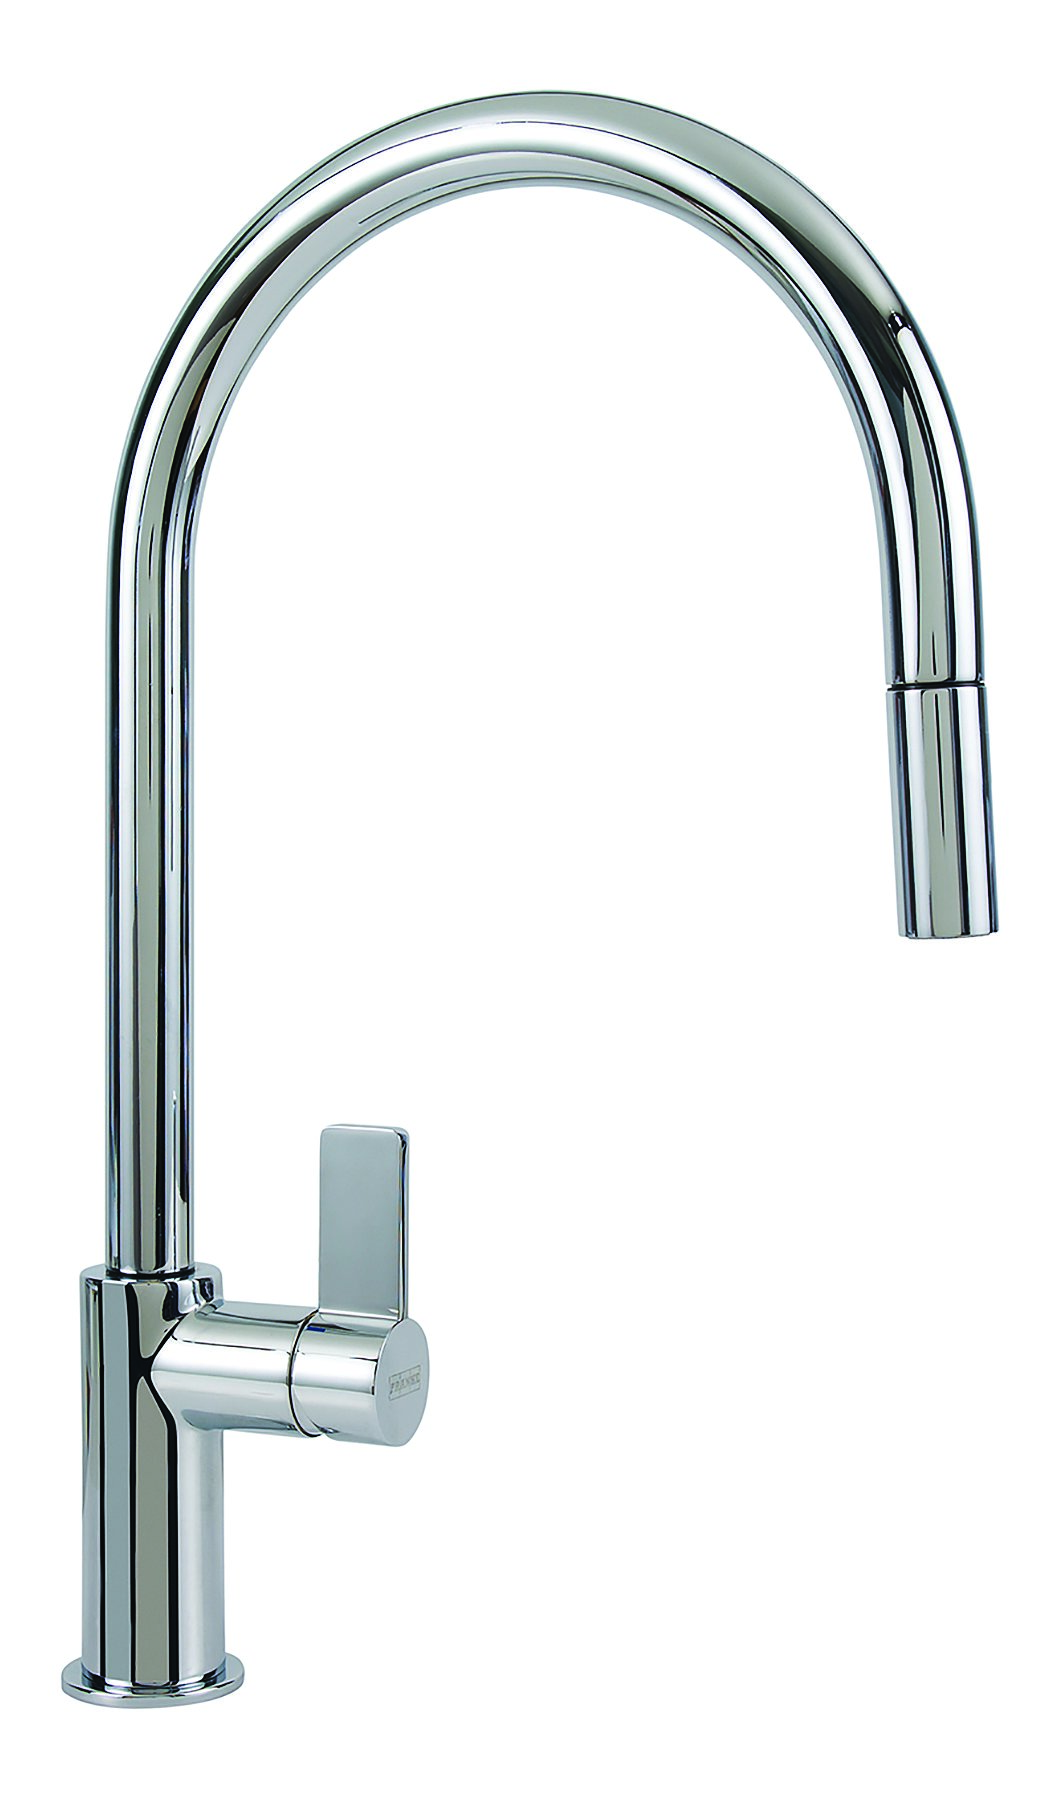 Franke_Ambient_Pull-Down_Kitchen_Faucet.jpg